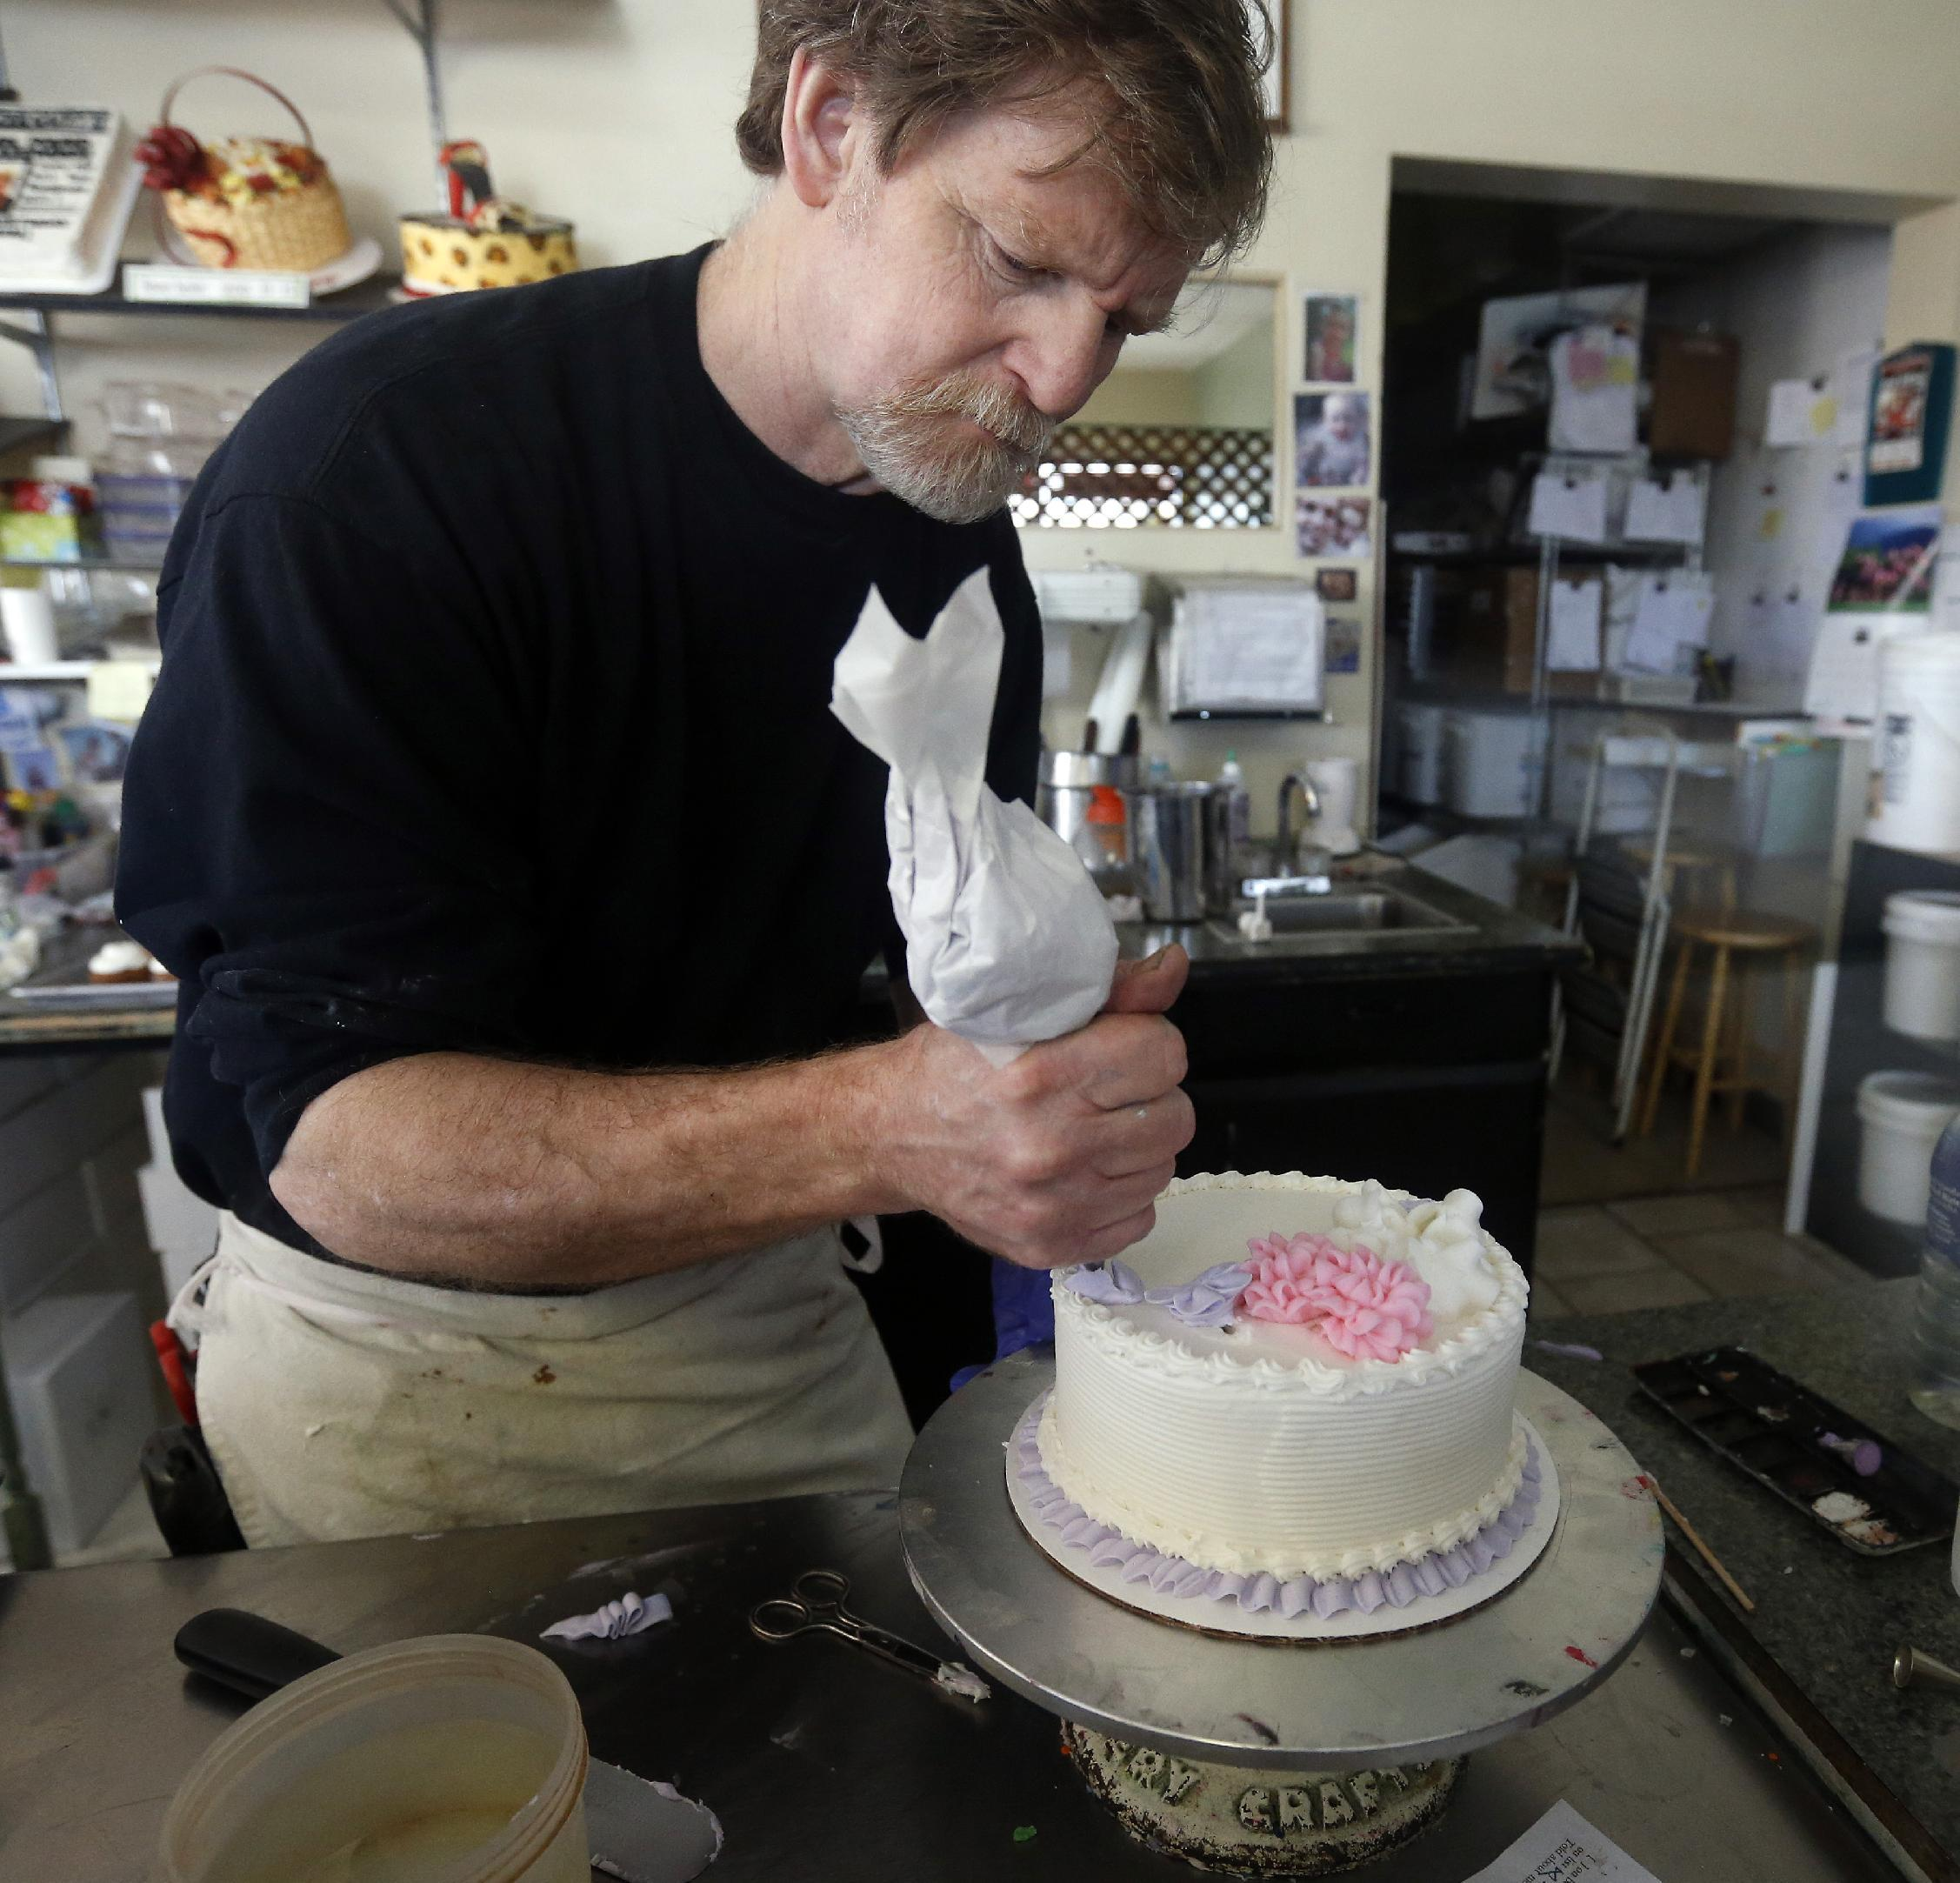 In this March 10, 2014 photo, Masterpiece Cakeshop owner Jack Phillips decorates a cake inside his store, in Lakewood, Colo. Phillips is appealing a recent ruling against him in a legal complaint filed with the Colorado Civil Rights Commission by a gay couple he refused to make a wedding cake for, based on his religious beliefs. (AP Photo/Brennan Linsley)